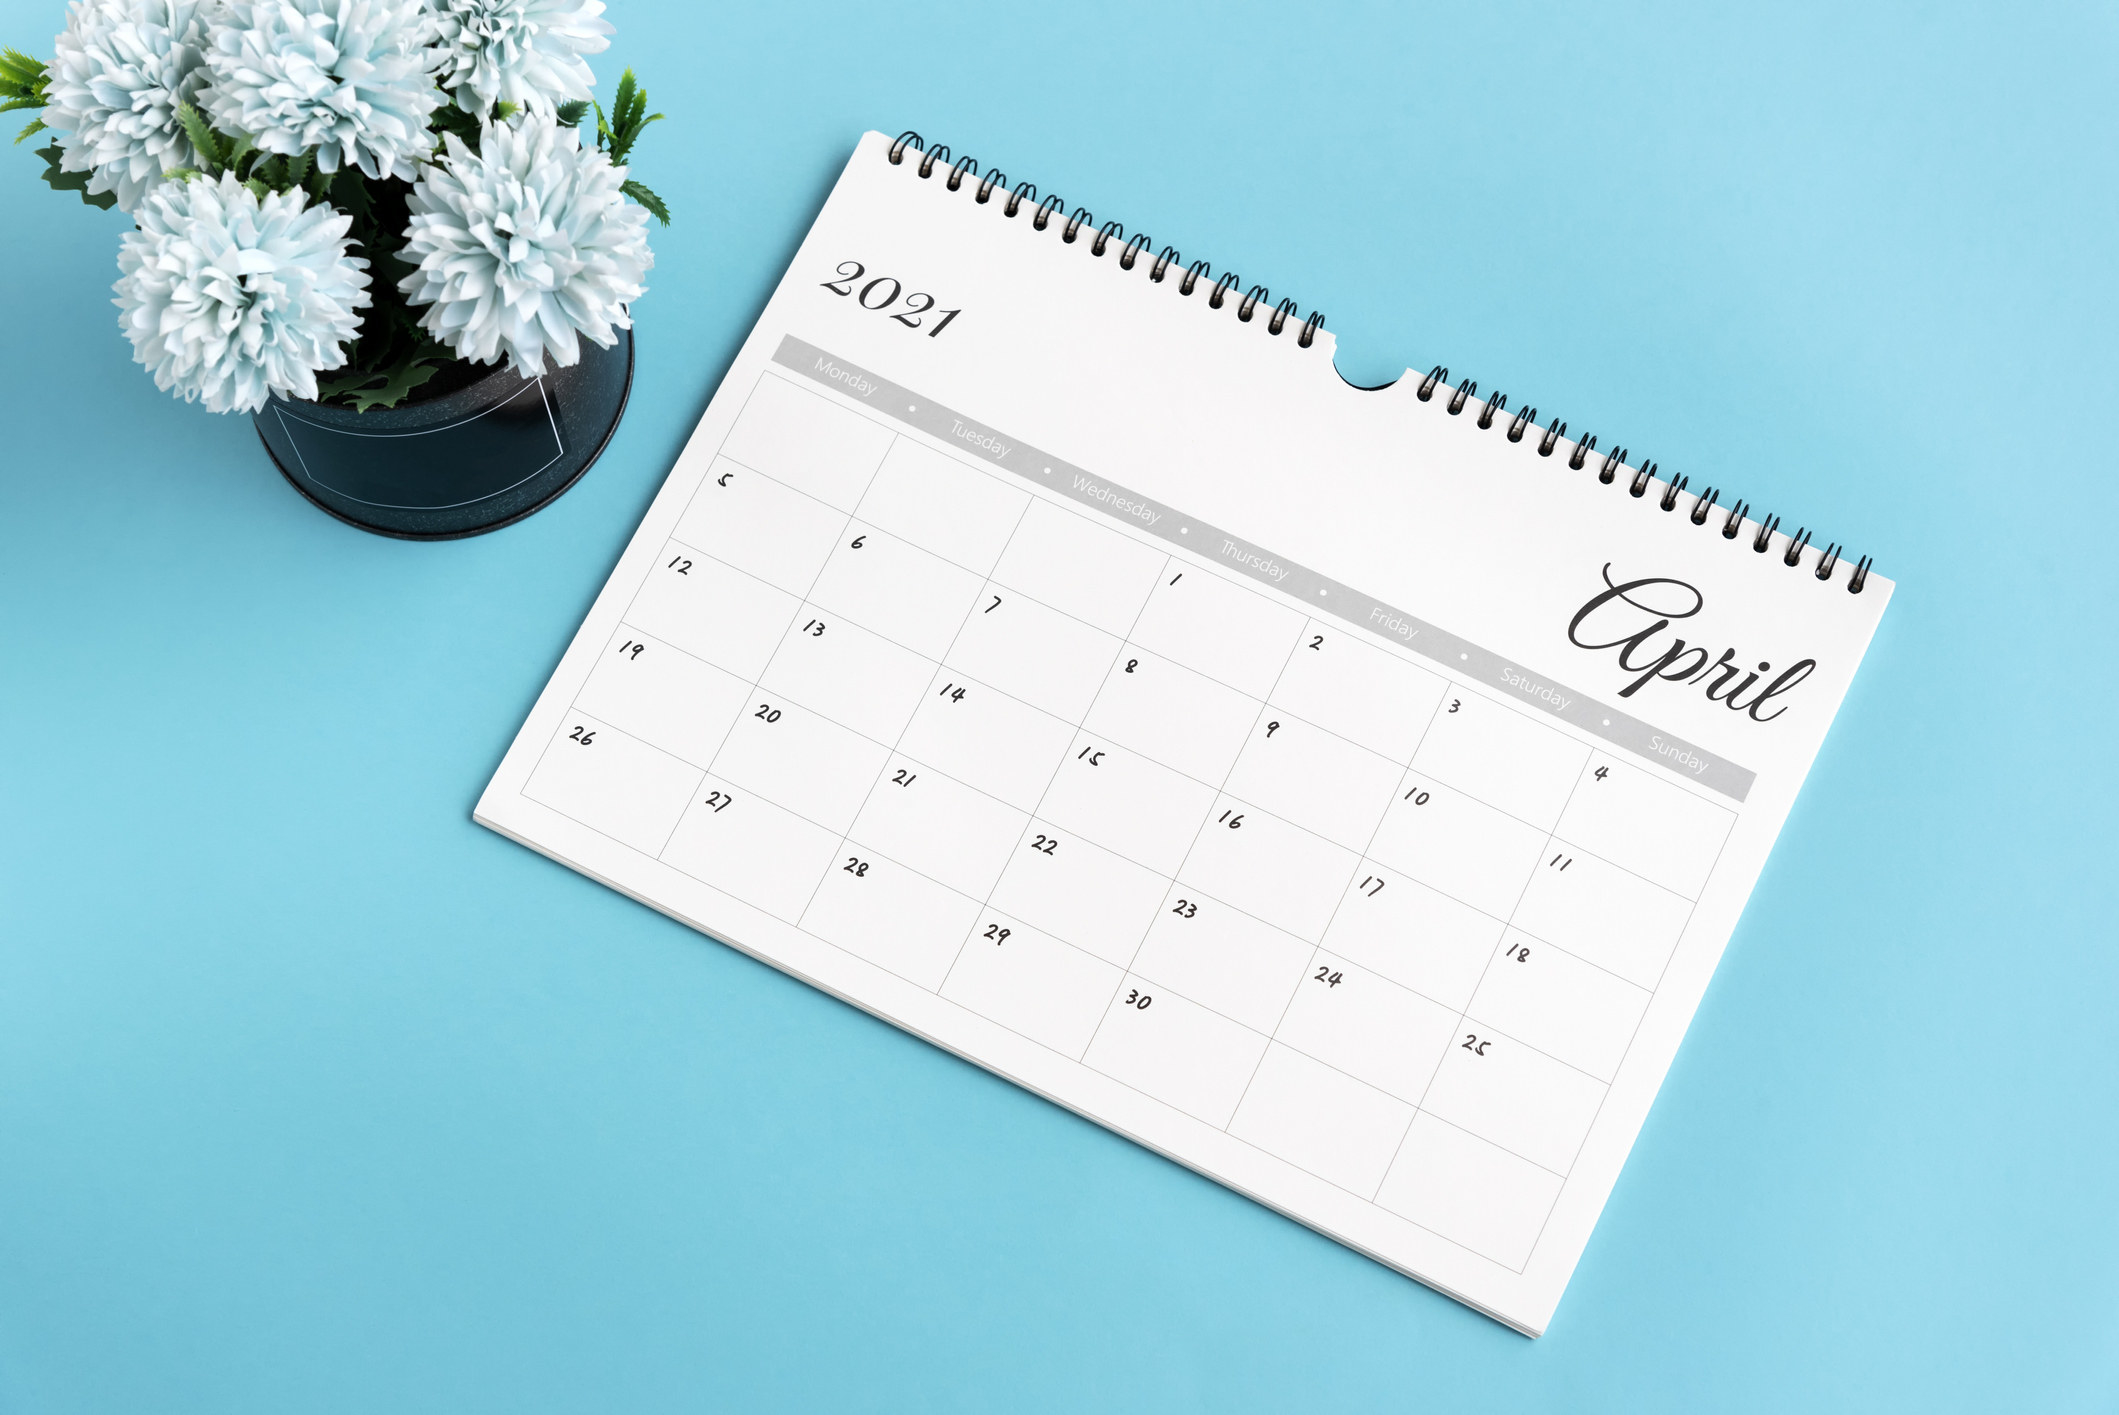 A spiral bound 2021 calendar opened to April, sitting next to a small pot of flowers